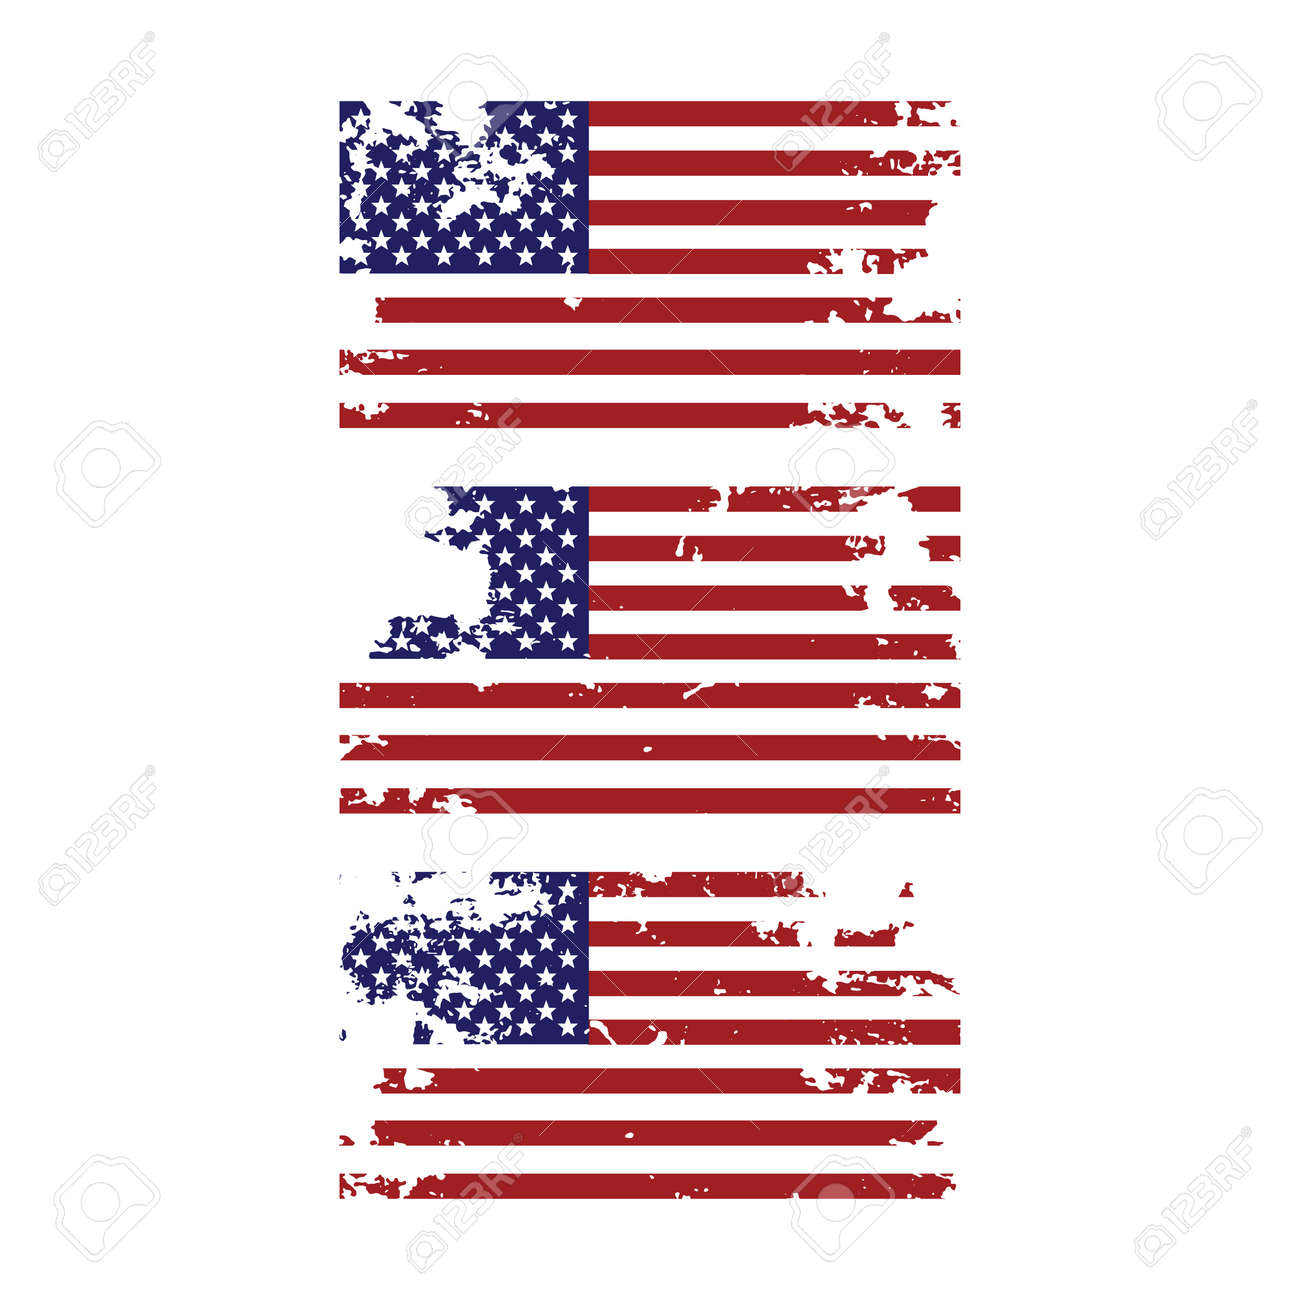 Grunge torn united states of america american flag icon design element for 4th of july independence day set - 119708745